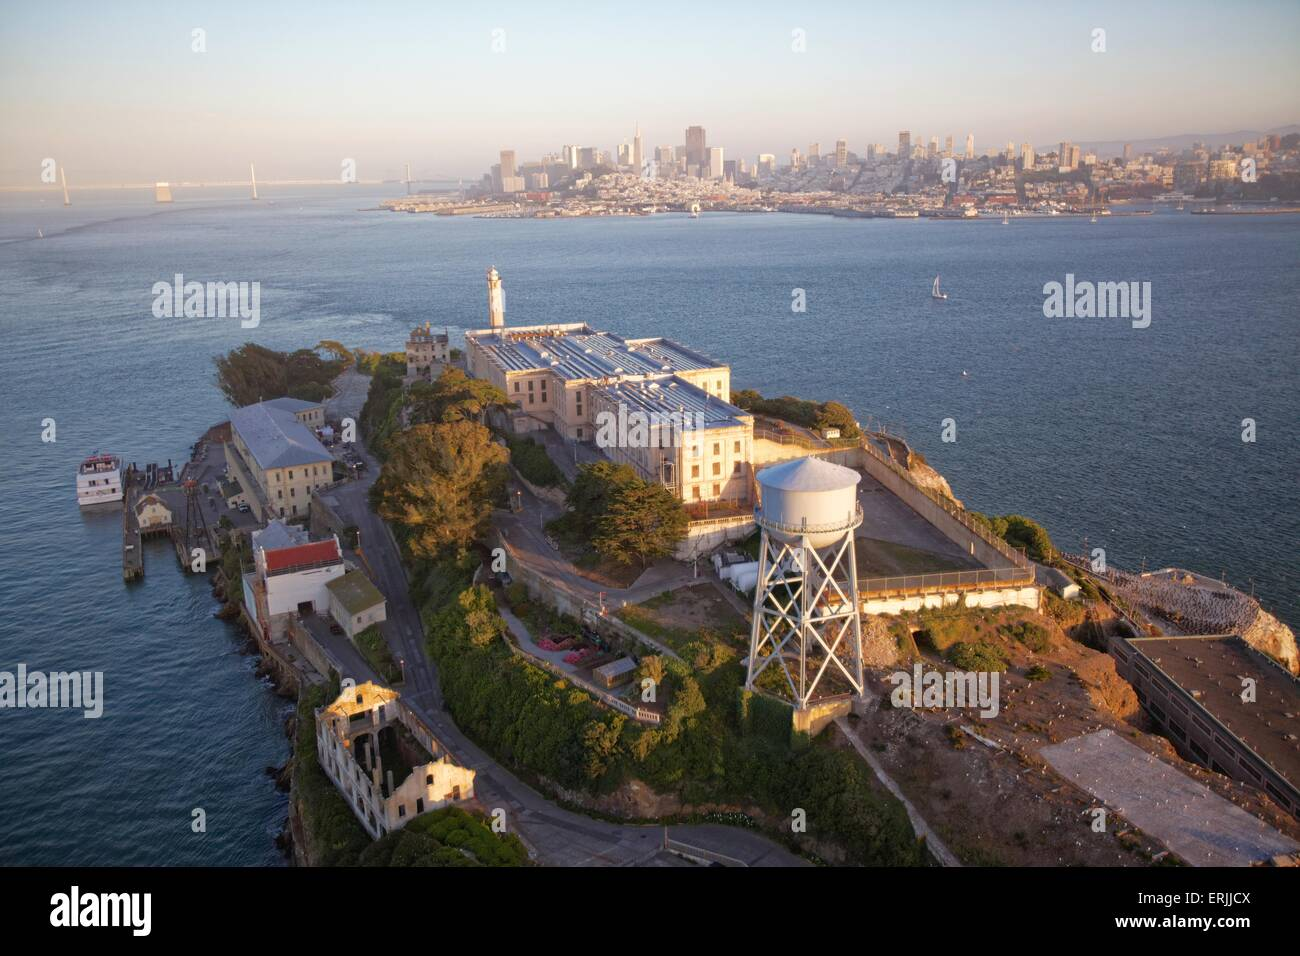 Aerial view over San Francisco at sunset  Aerial view over San Francisco and Alcatraz Island at sunset - Stock Image